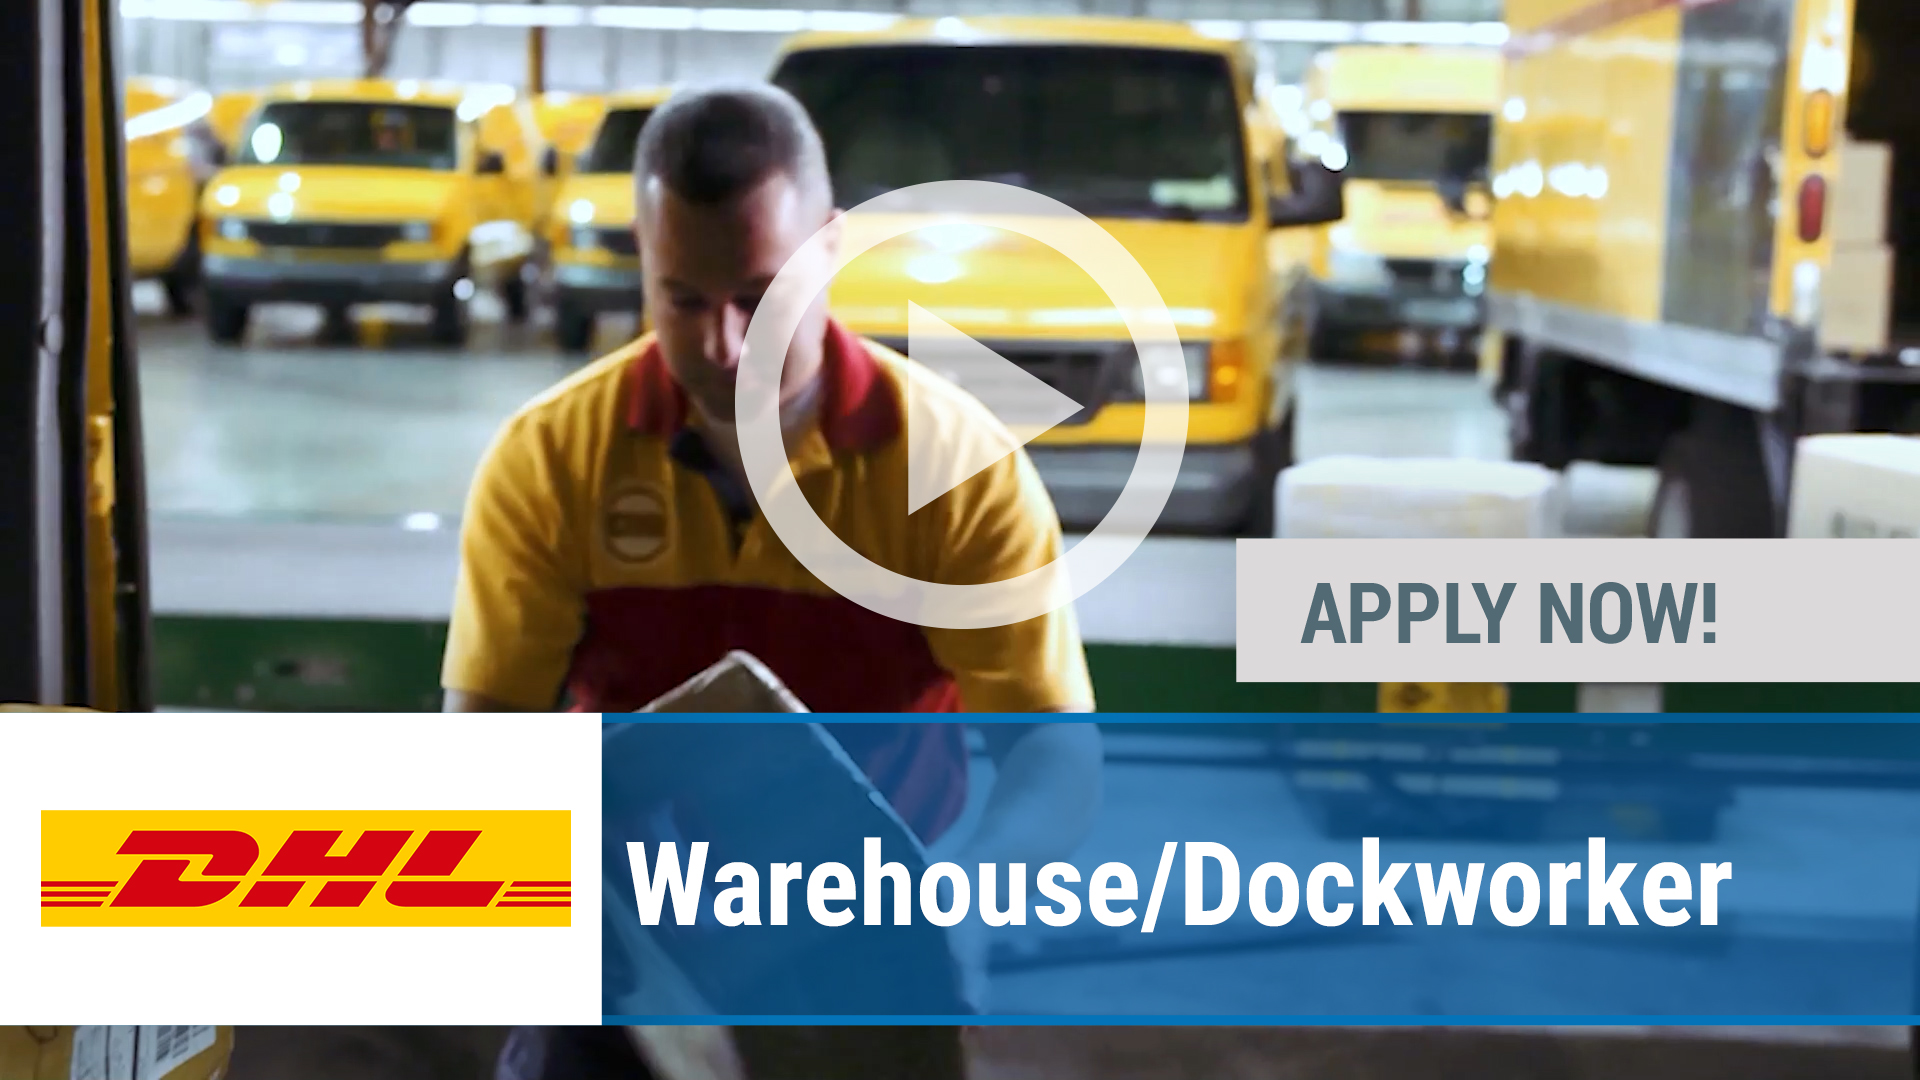 Watch our careers video for available job opening Warehouse_Dockworker in Queens, NY, USA